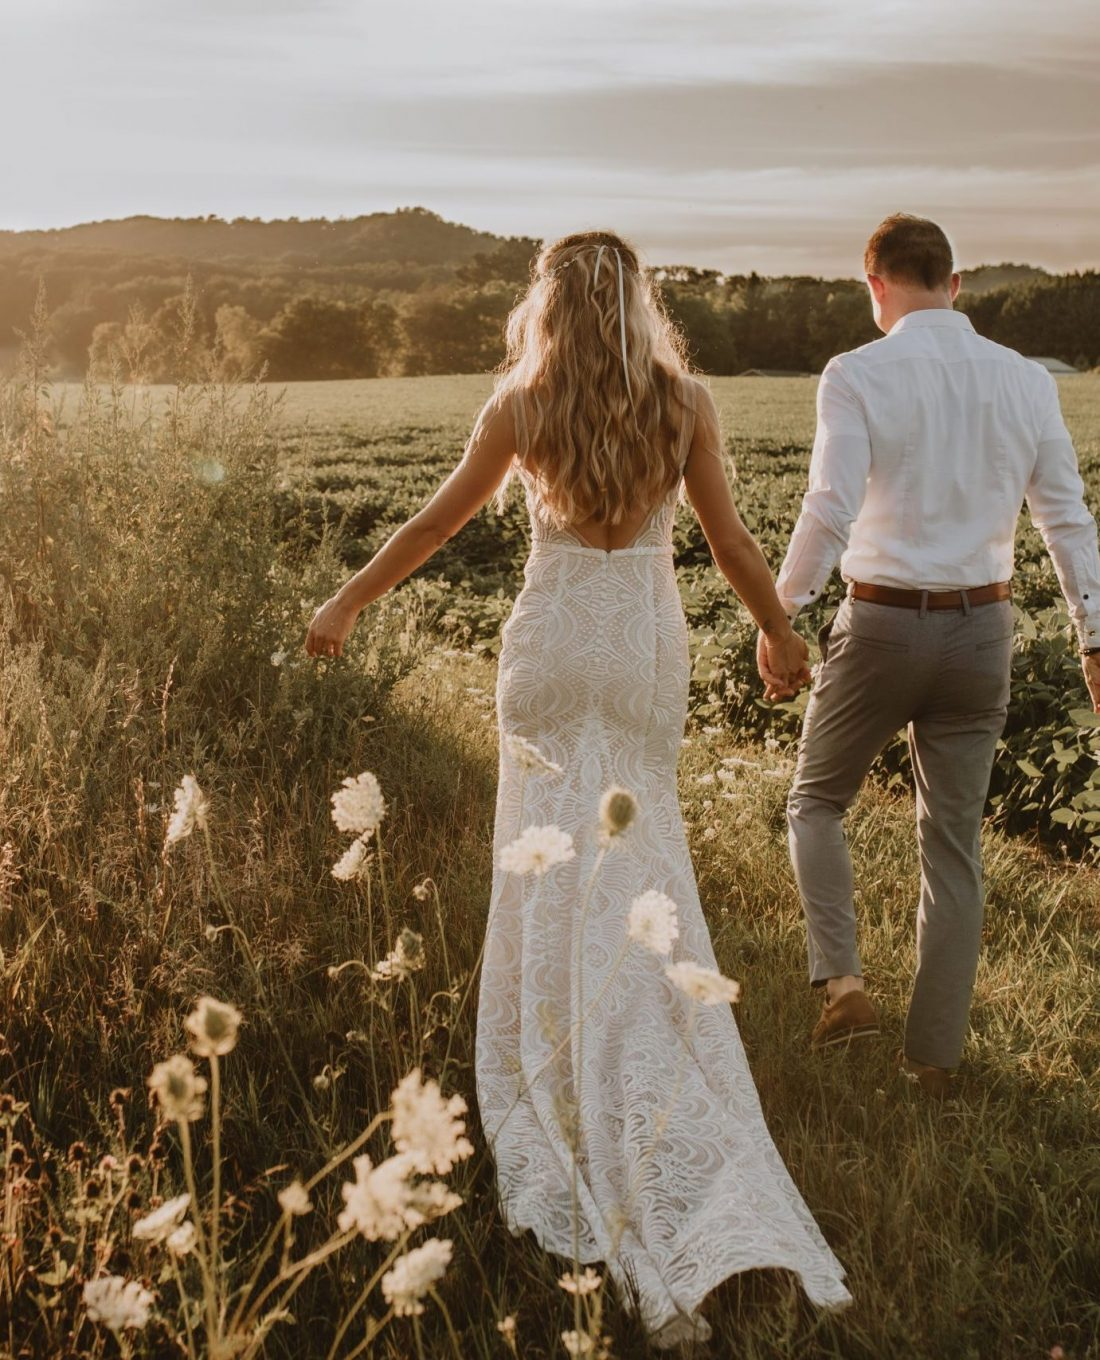 Bride and groom frolicking through a sunset flower field